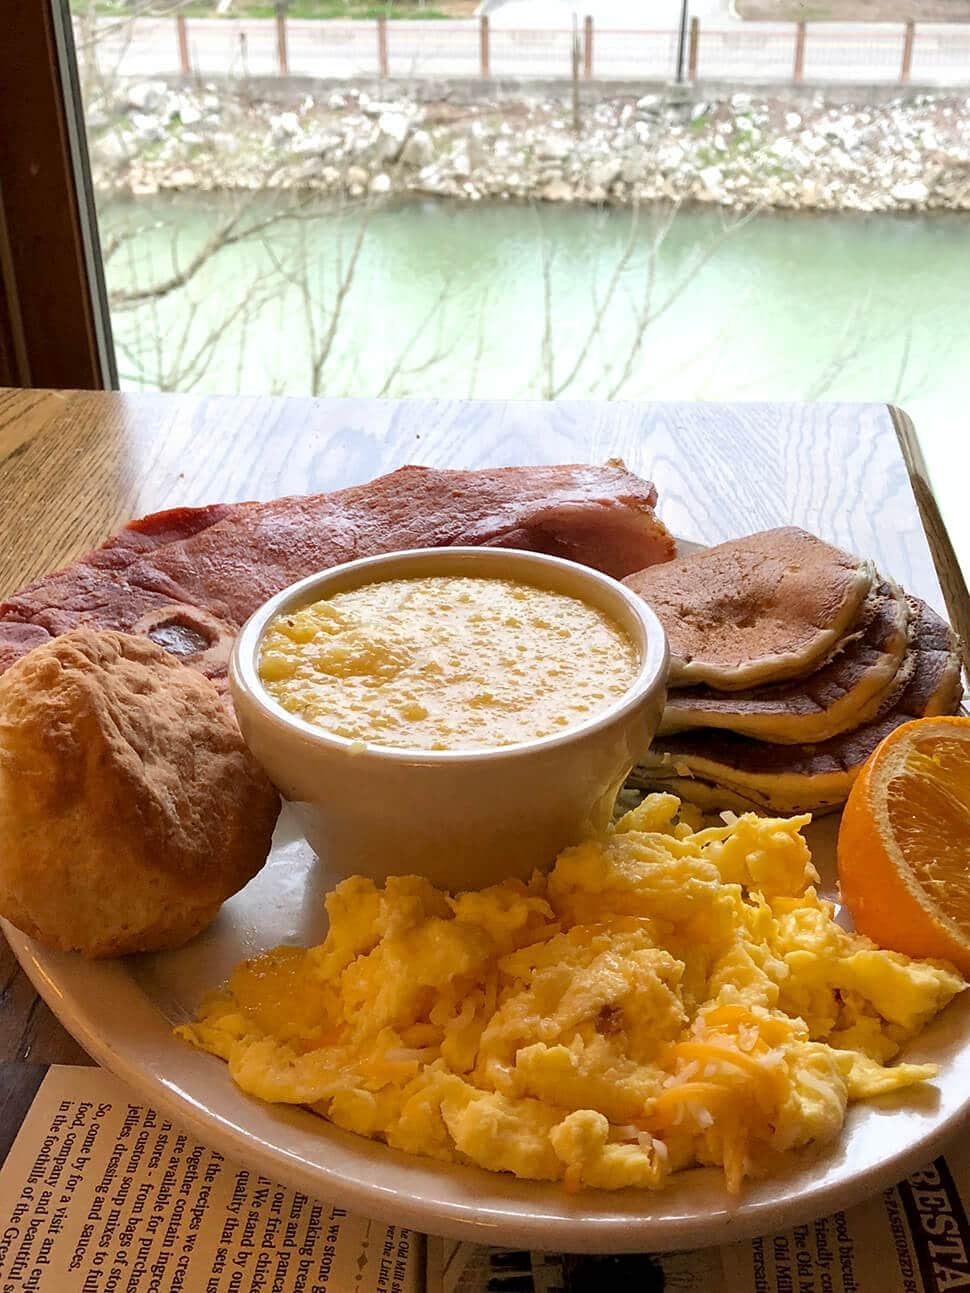 A plate of eggs, grits, and ham on a table that looks out to the river in Pigeon Forge at the Old Mill Restaurant.